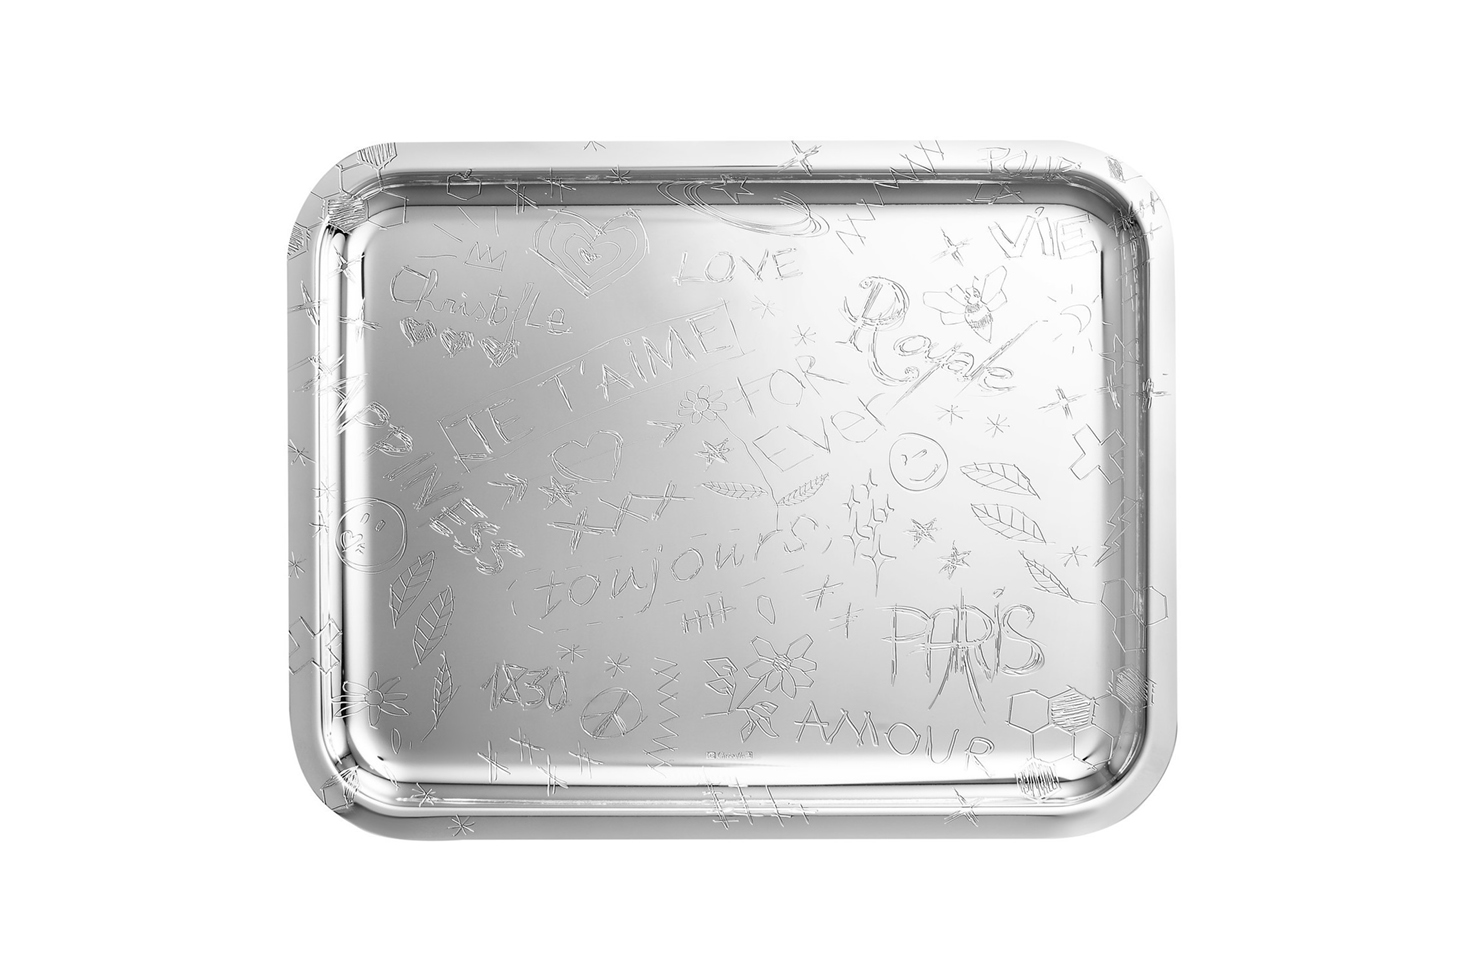 Christofle Silver Plated Graffiti Tray